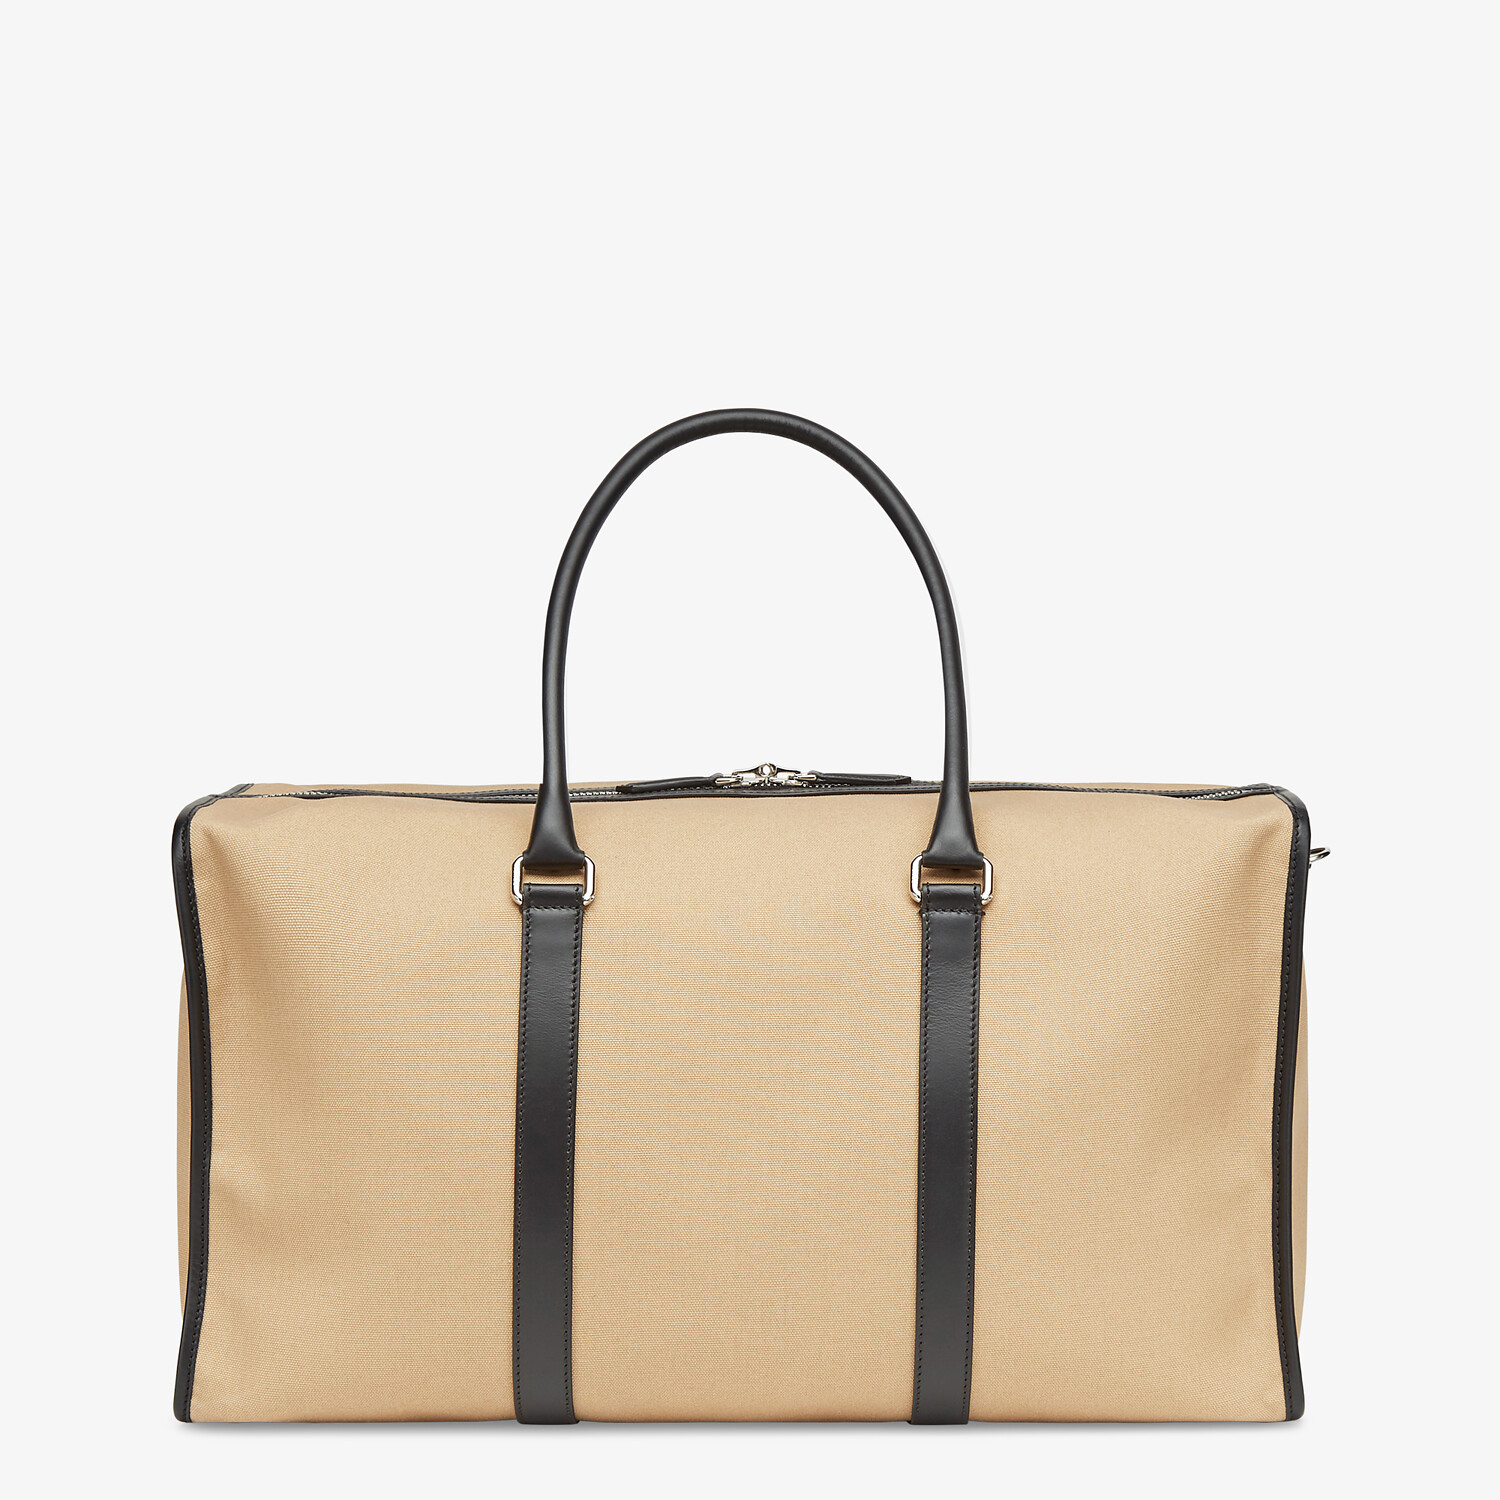 FENDI LARGE DUFFEL BAG - Large beige canvas bag - view 3 detail